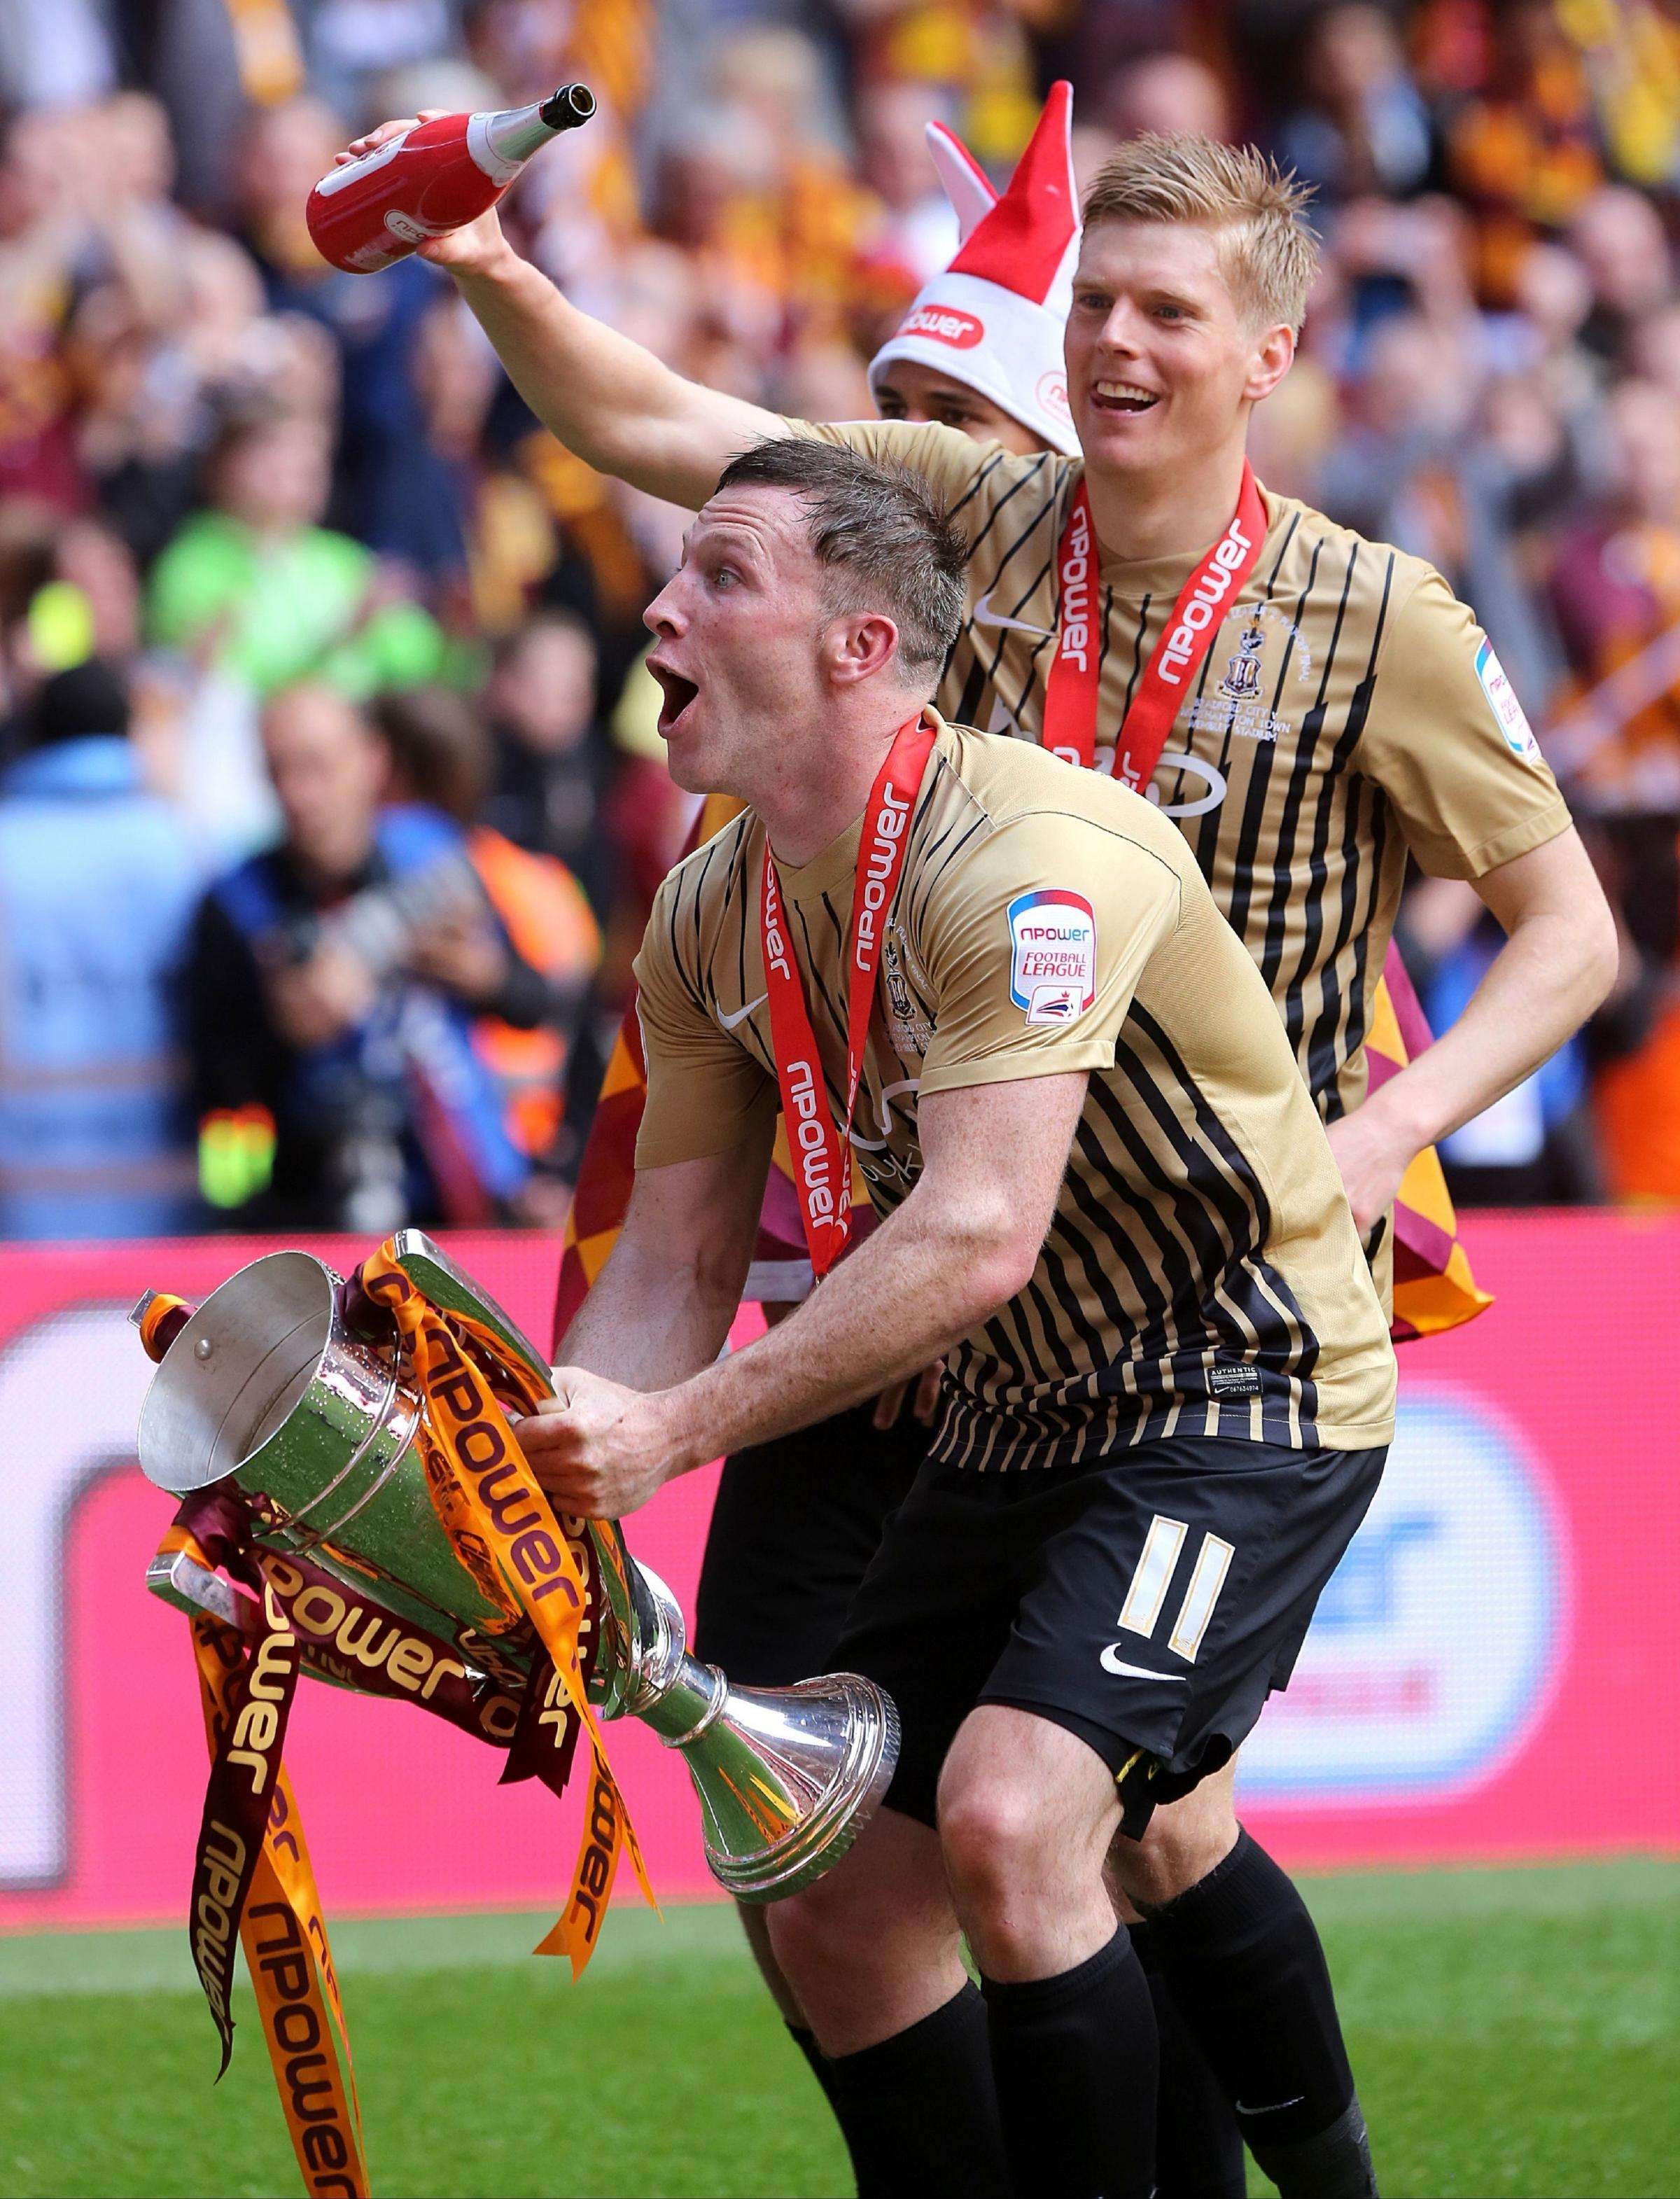 Unforgettable memories of my time at Bantams: Thompson reflects on ride of his life